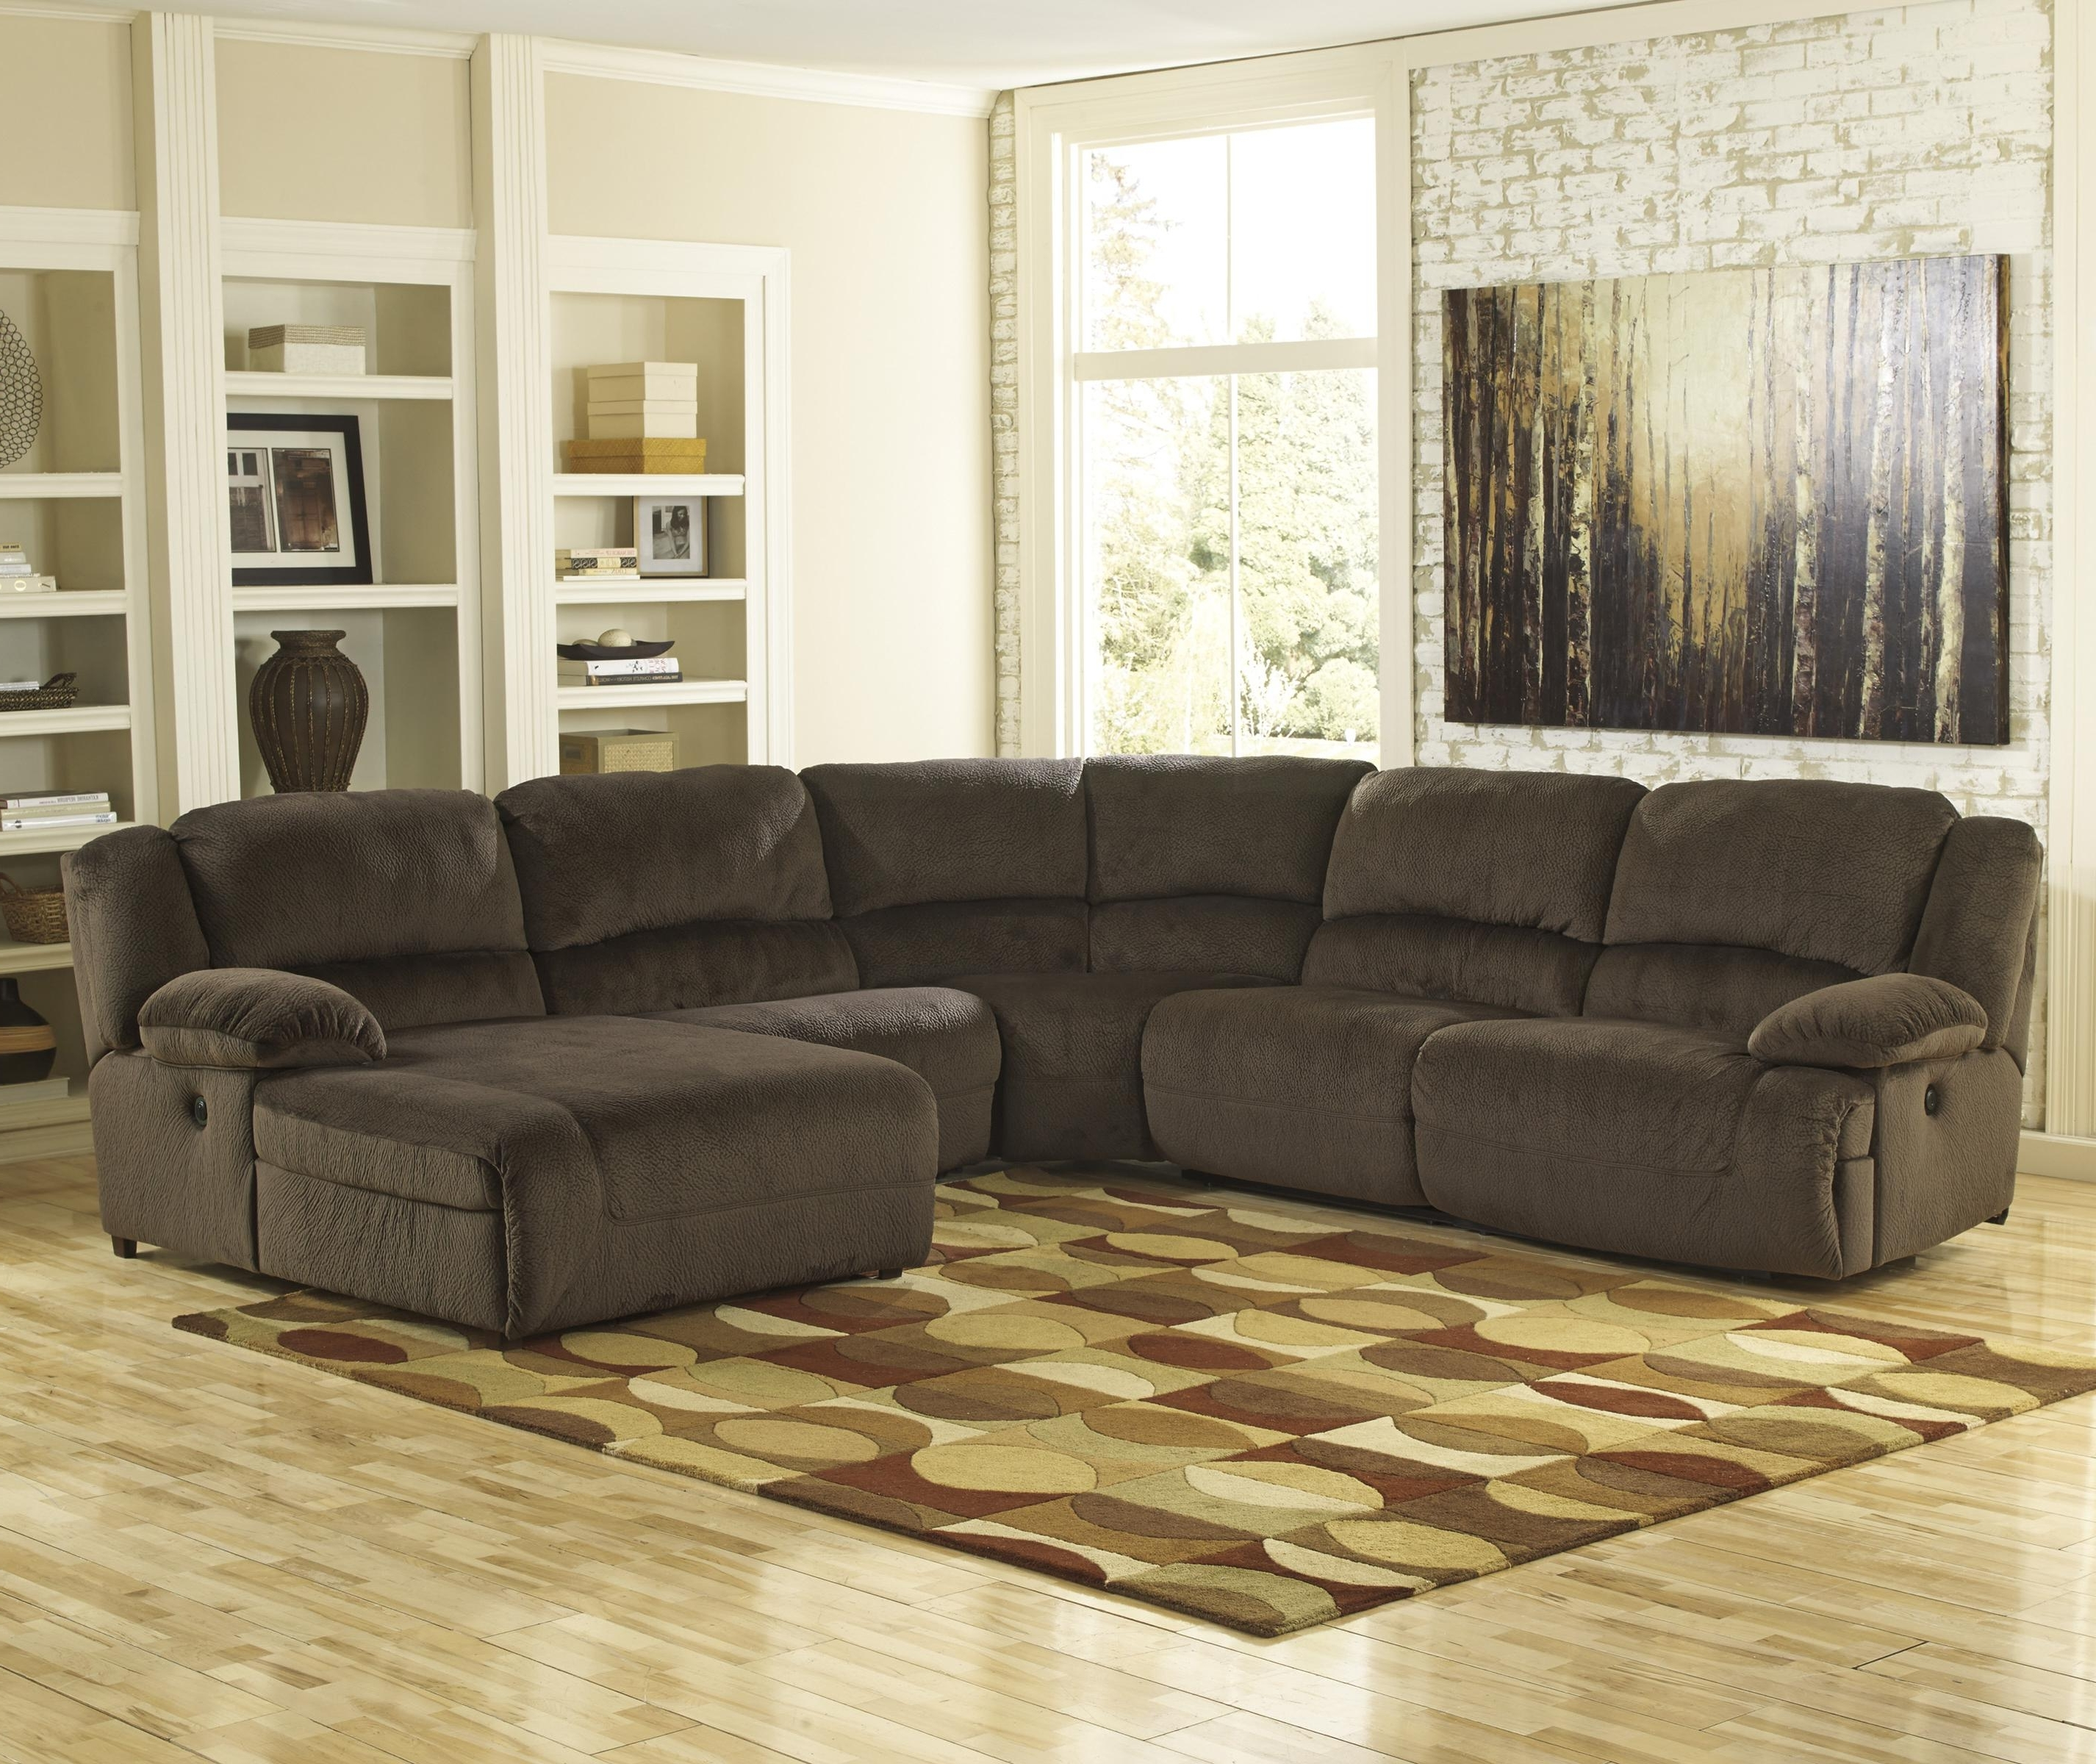 Living Room: Chocolate Ashley Furniture Sectionals With Chaise For Throughout Favorite Sectionals With Recliner And Chaise (View 4 of 15)